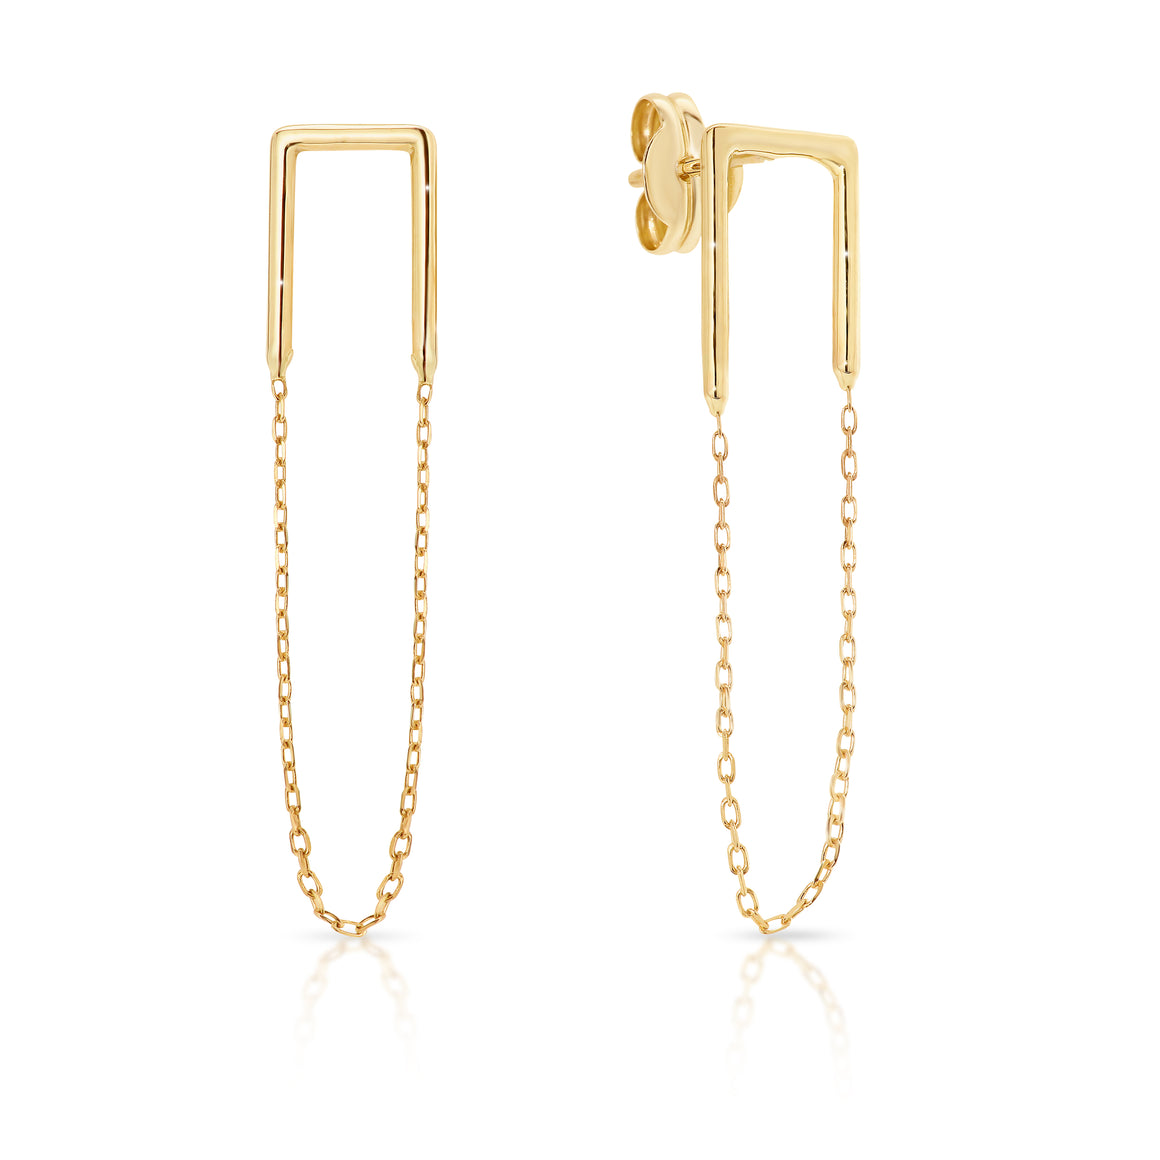 9ct Gold Chain 'Caggie' earrings - Gemma Stone  ABN:51 621 127 866